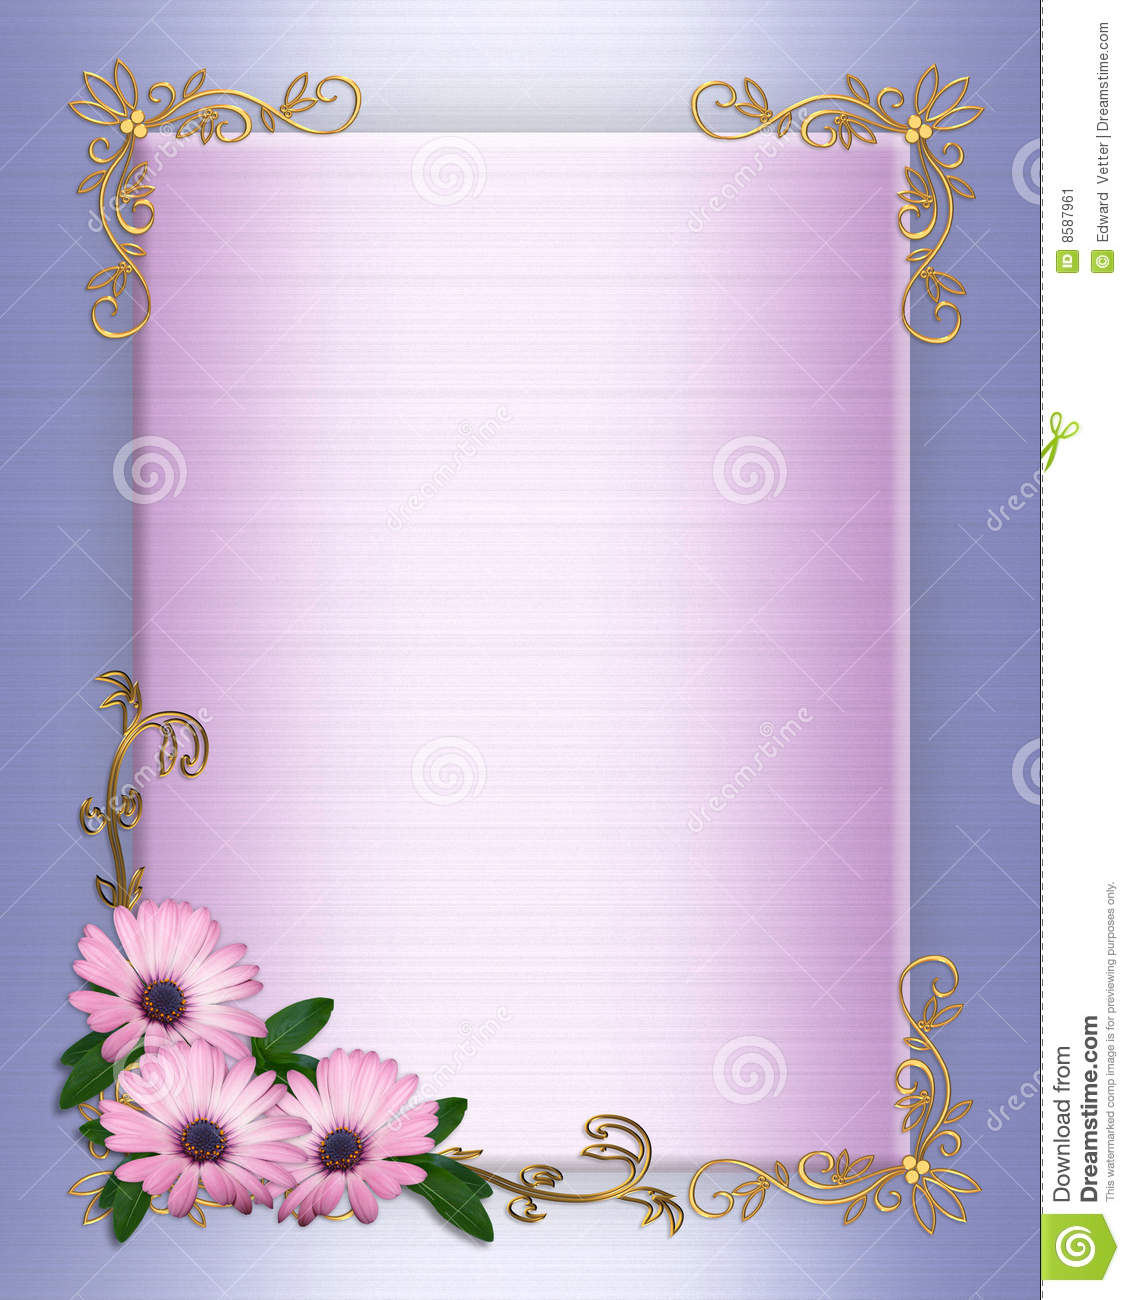 Wedding Invitation Border Purple Flowers Stock